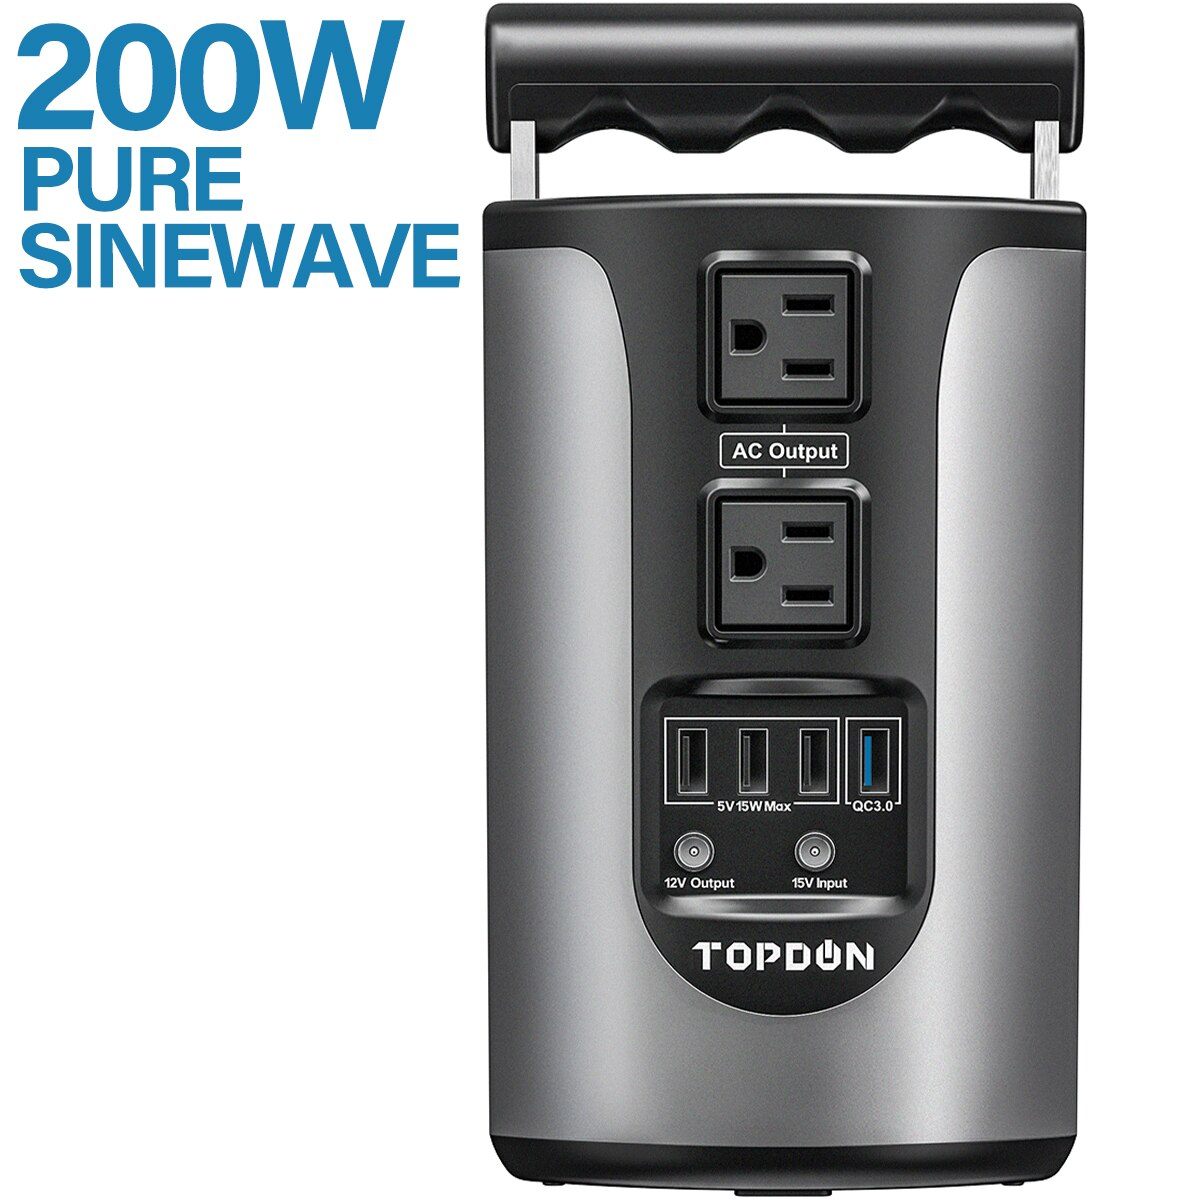 Topdon-H200-Portable-Energy-Storage-Power-Supply-185WH-Capacity-200W-Pure-Sinesave-Energy-Storage-Power-Supply-With-4-USB-Ports-1005002130052063